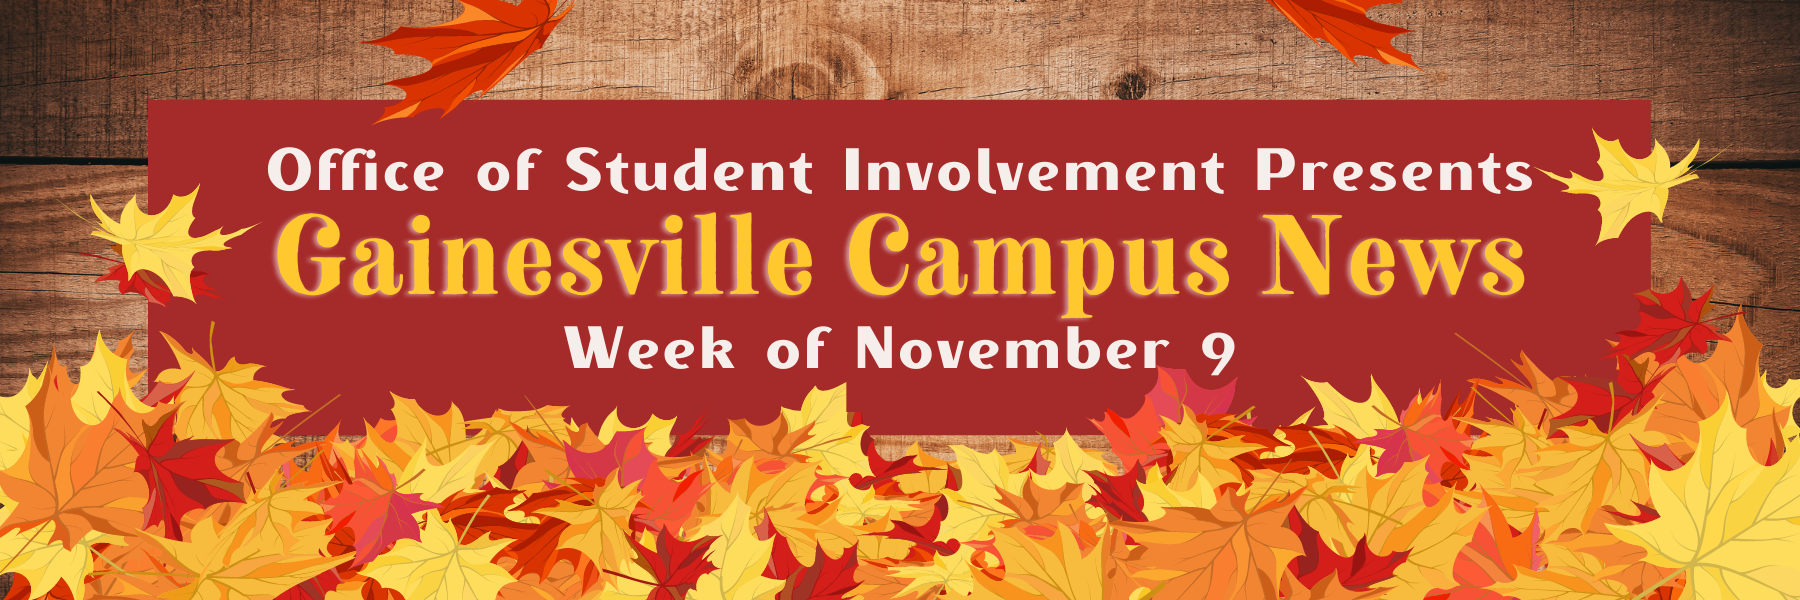 Office of Student Involvement presents Gainesville Campus News, week of November 9